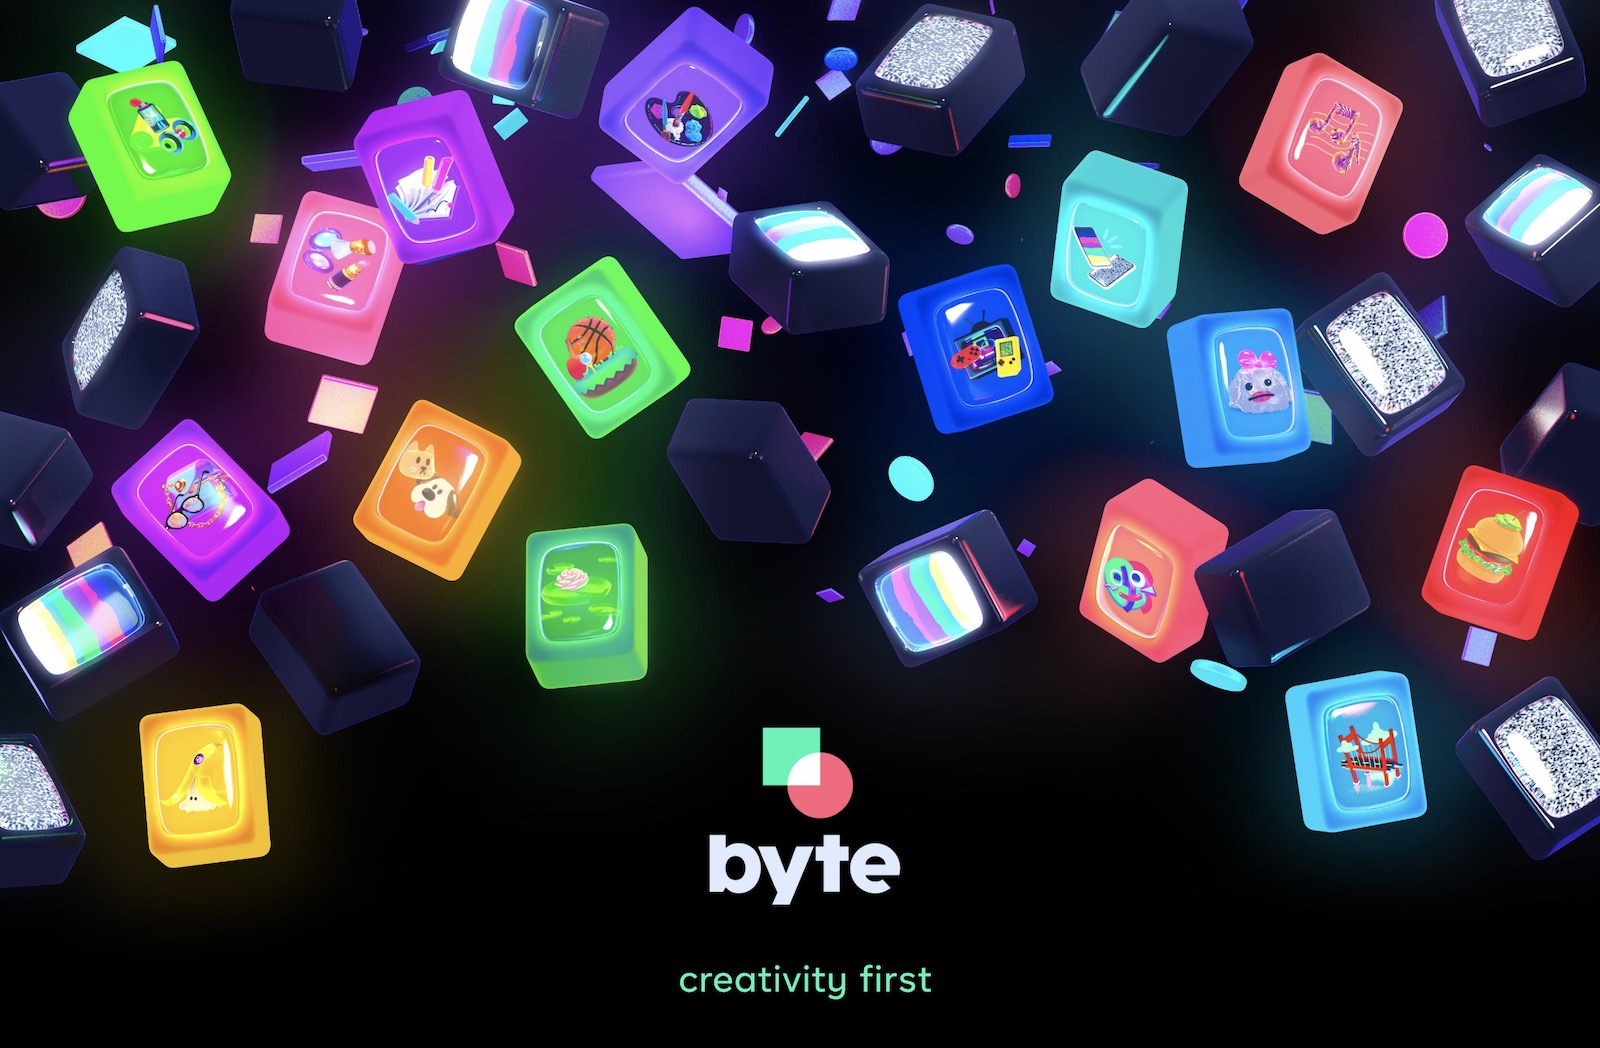 Byte is now official